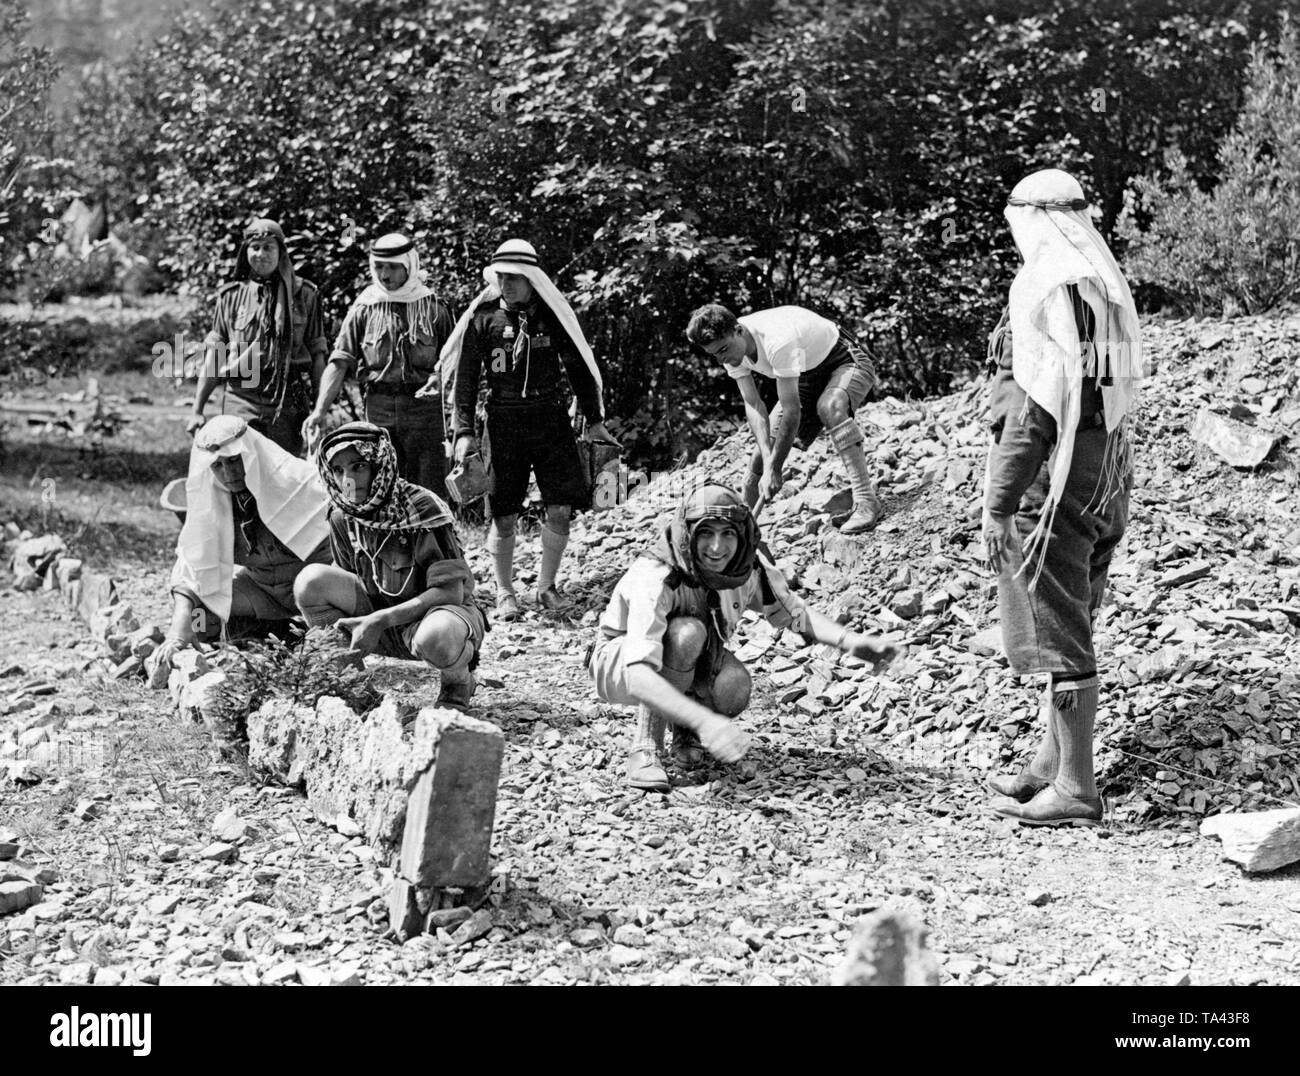 Palestinian scouts at an international meeting for 'Rover' in Kandersteg in Switzerland. - Stock Image